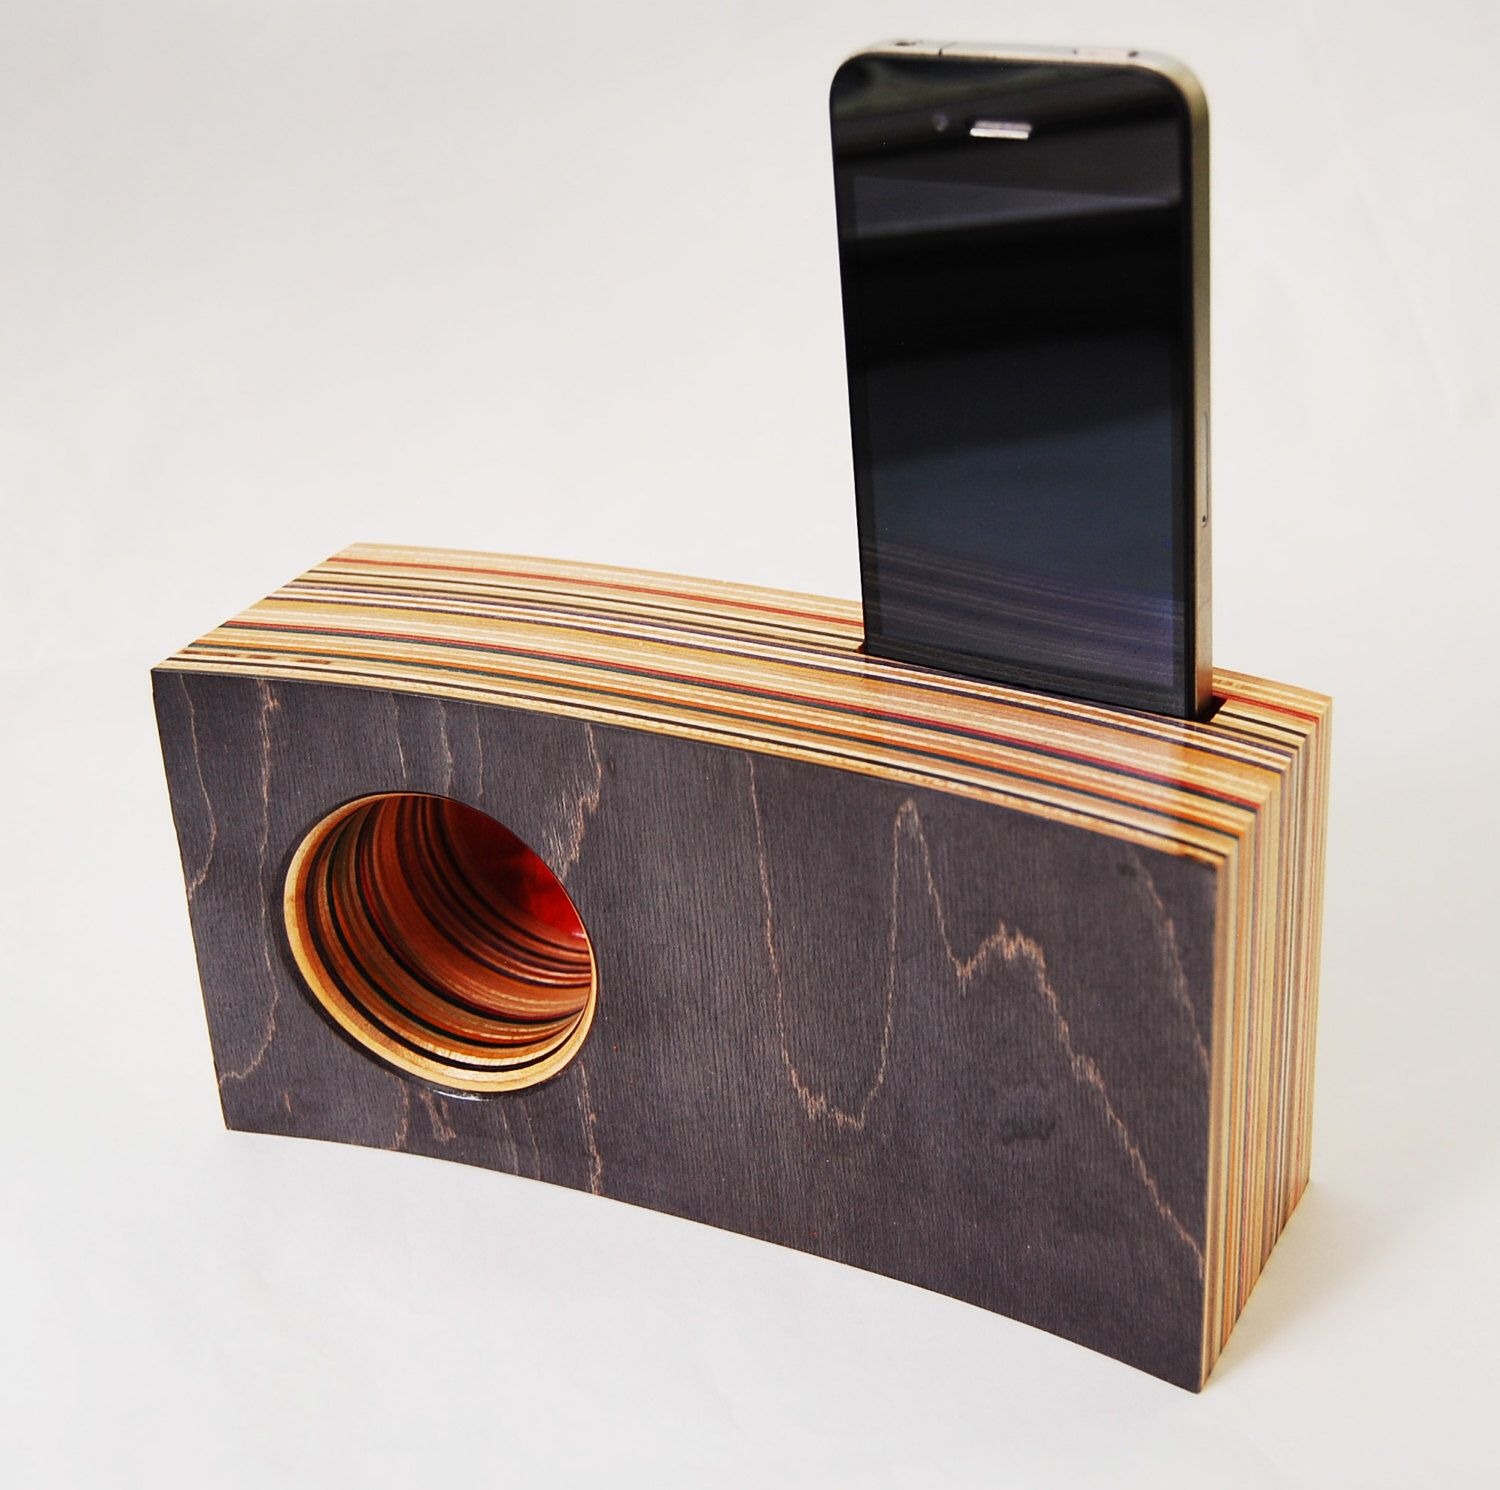 25 Diy Bunk Beds With Plans: Smartphone Speaker/Amplifier Made From Reclaimed